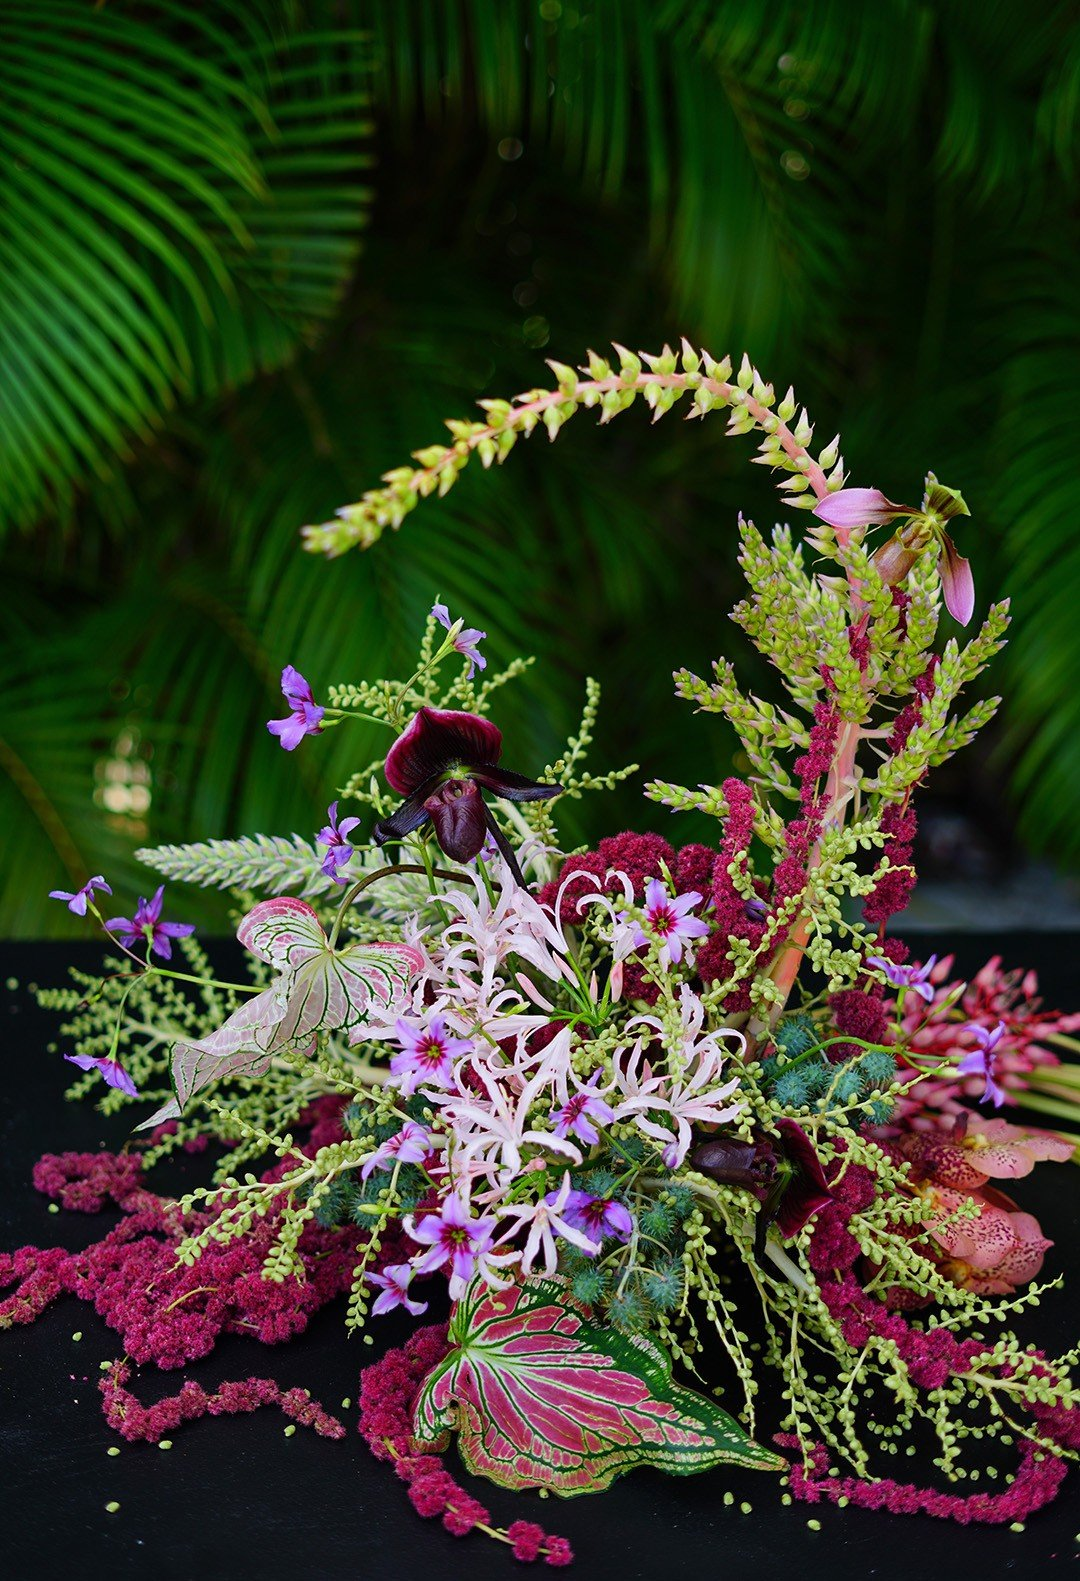 An arrangement by Jenya Flowers featuring bromelias, Lady Slipper orchids, nerine and heart-shaped caladium leaves.